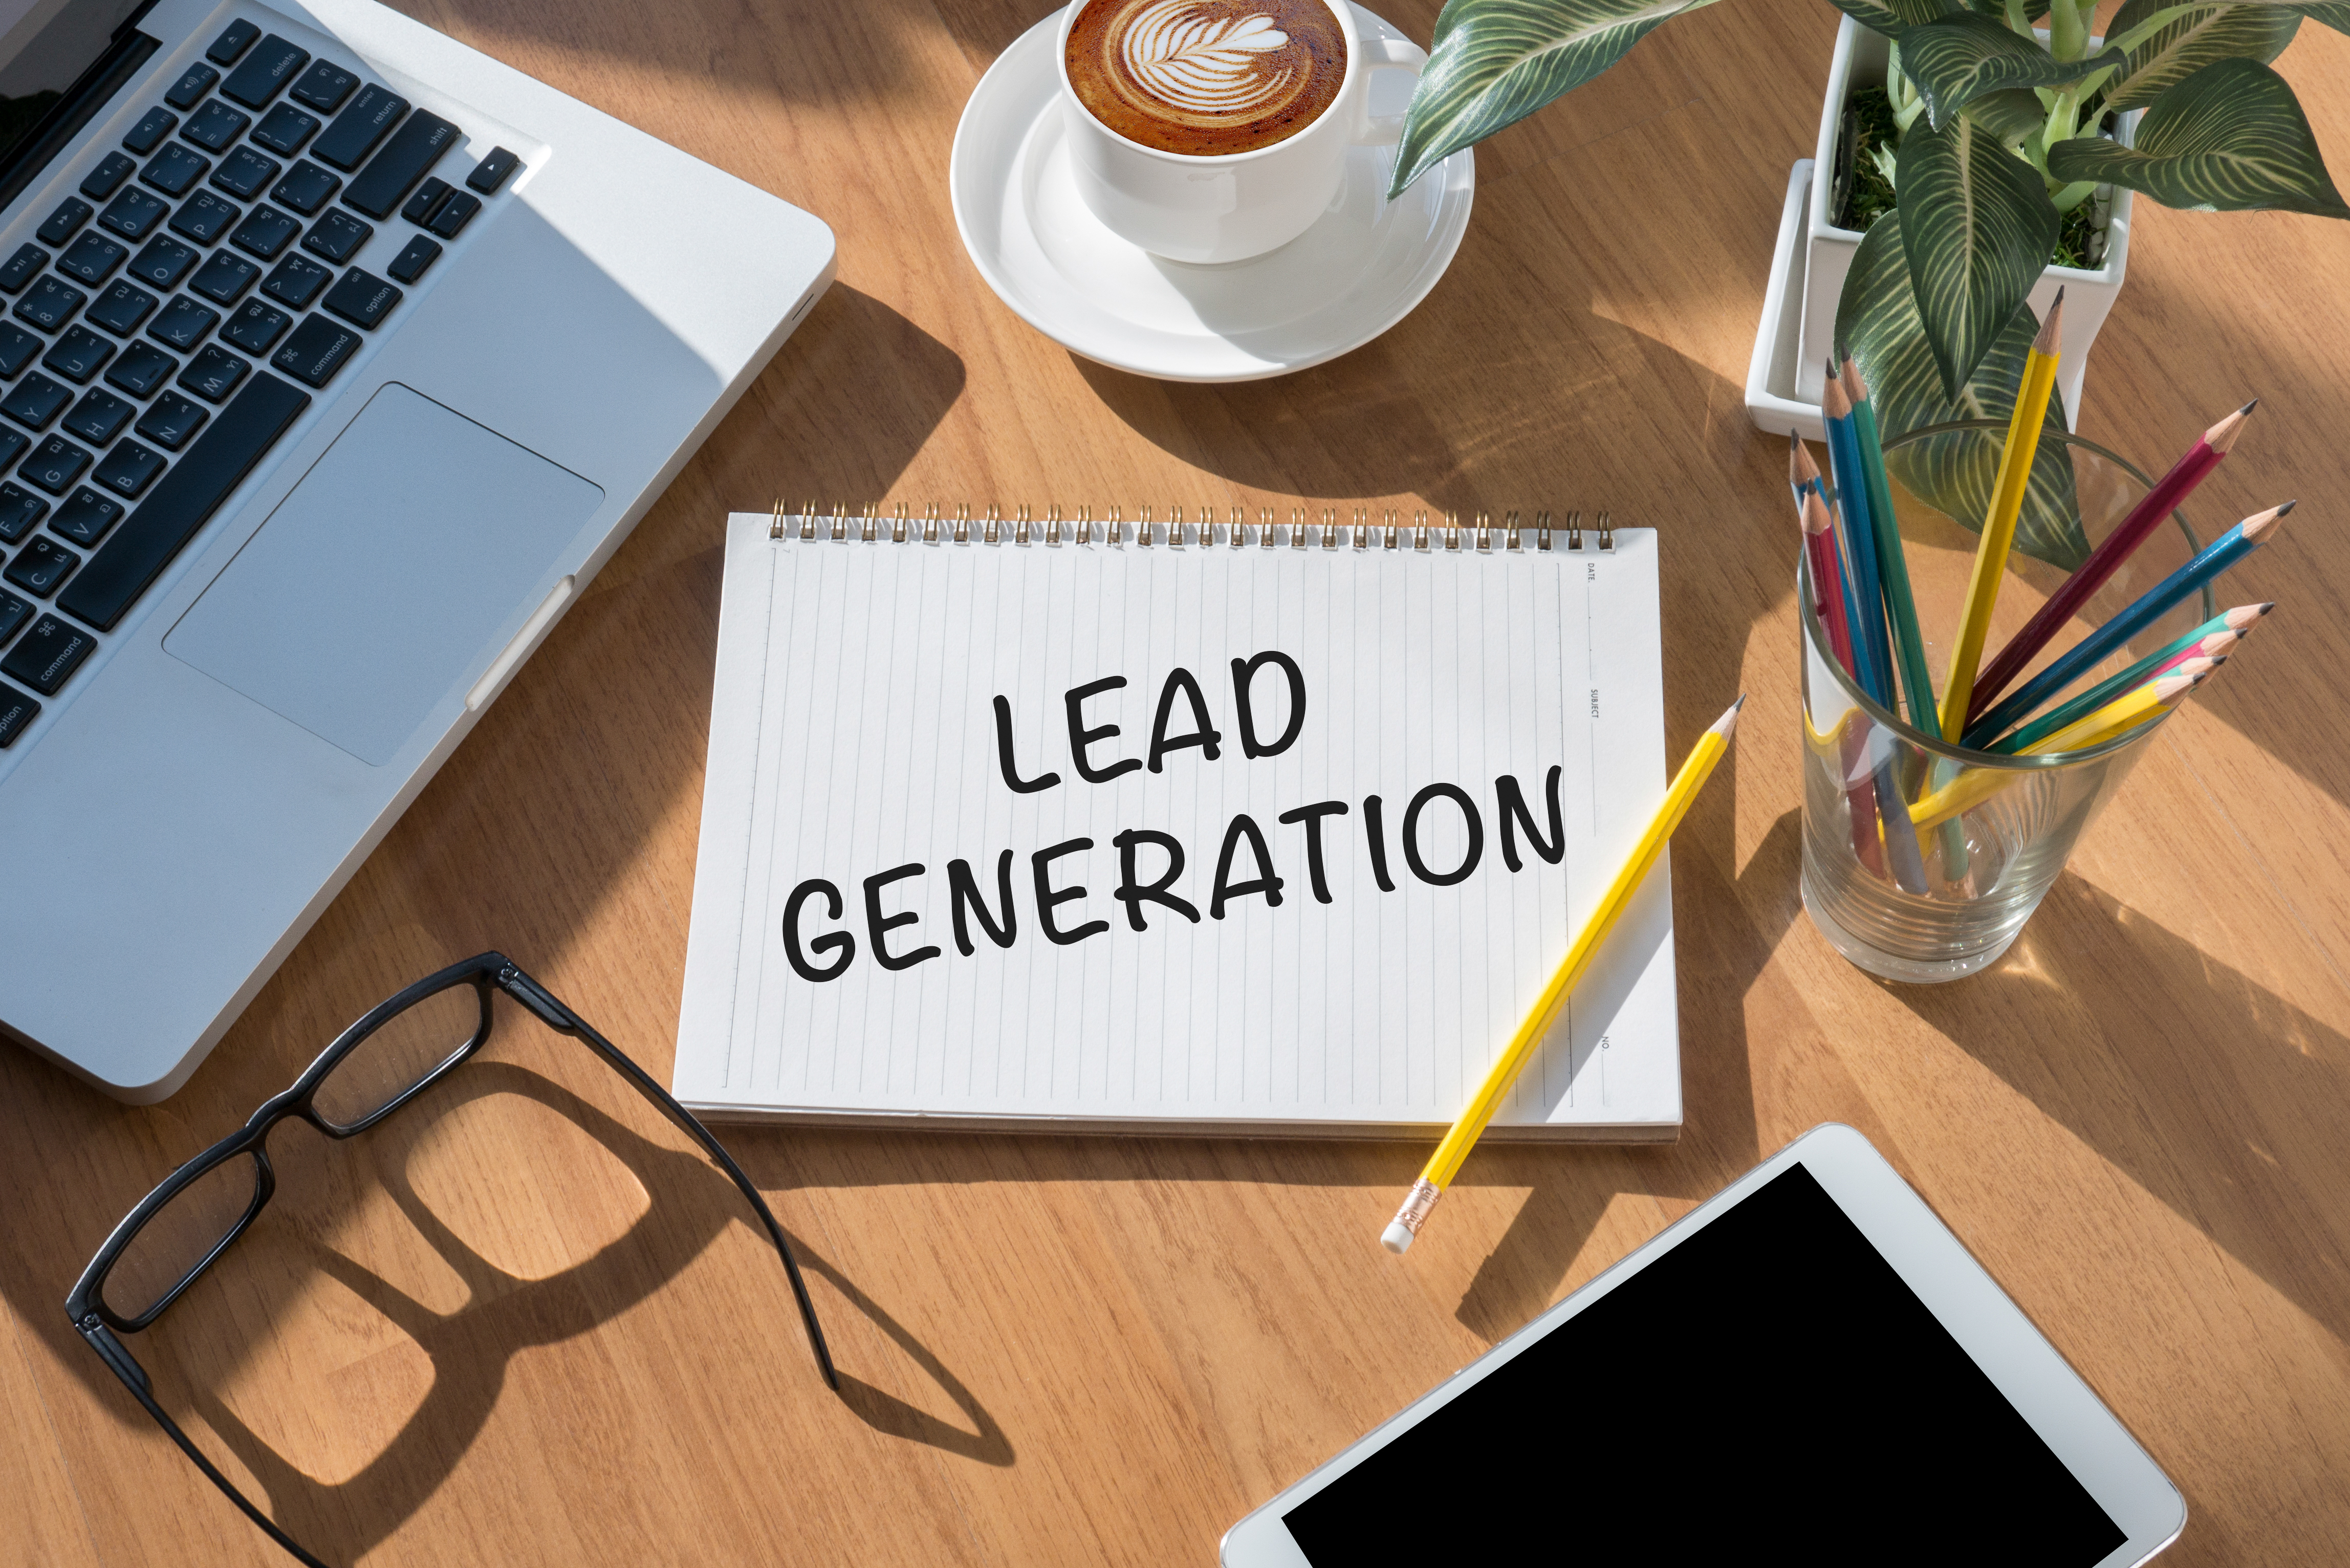 email marketing - lead generation